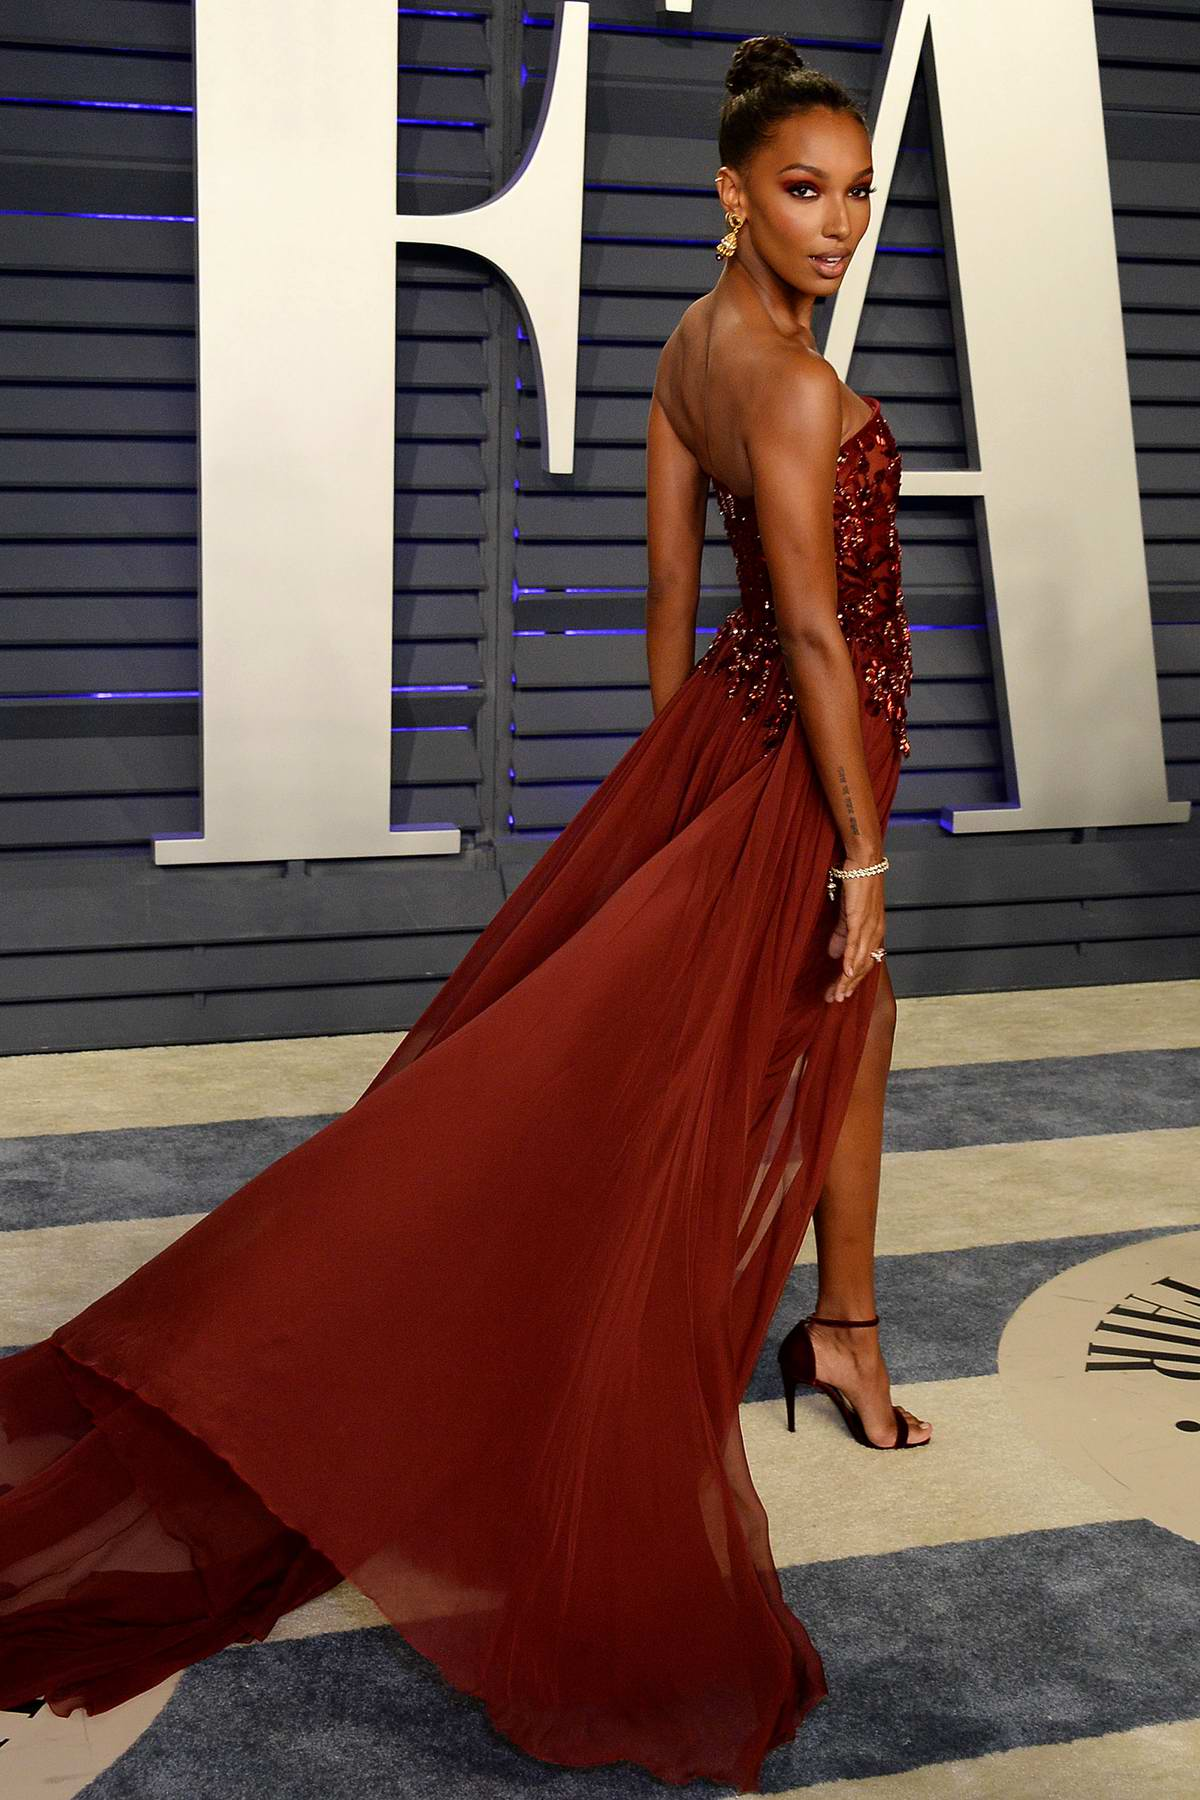 Jasmine Tookes Attends The Vanity Fair Oscar Party At Wallis Annenberg Center For The Performing Arts In Beverly Hills California 240219 8